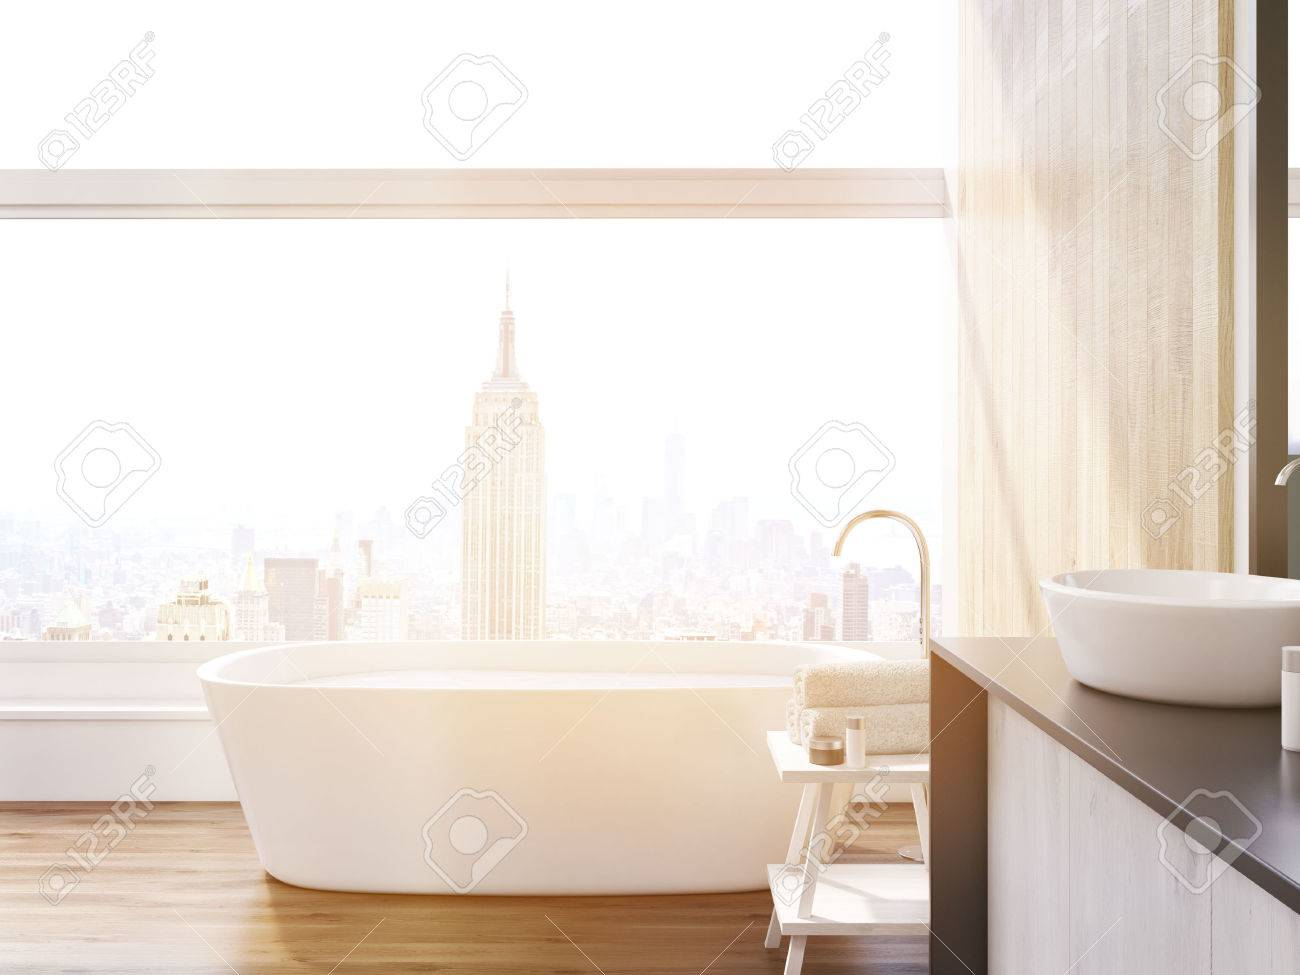 New York Bathroom With Tab; Table For Towels; Large Window And ...